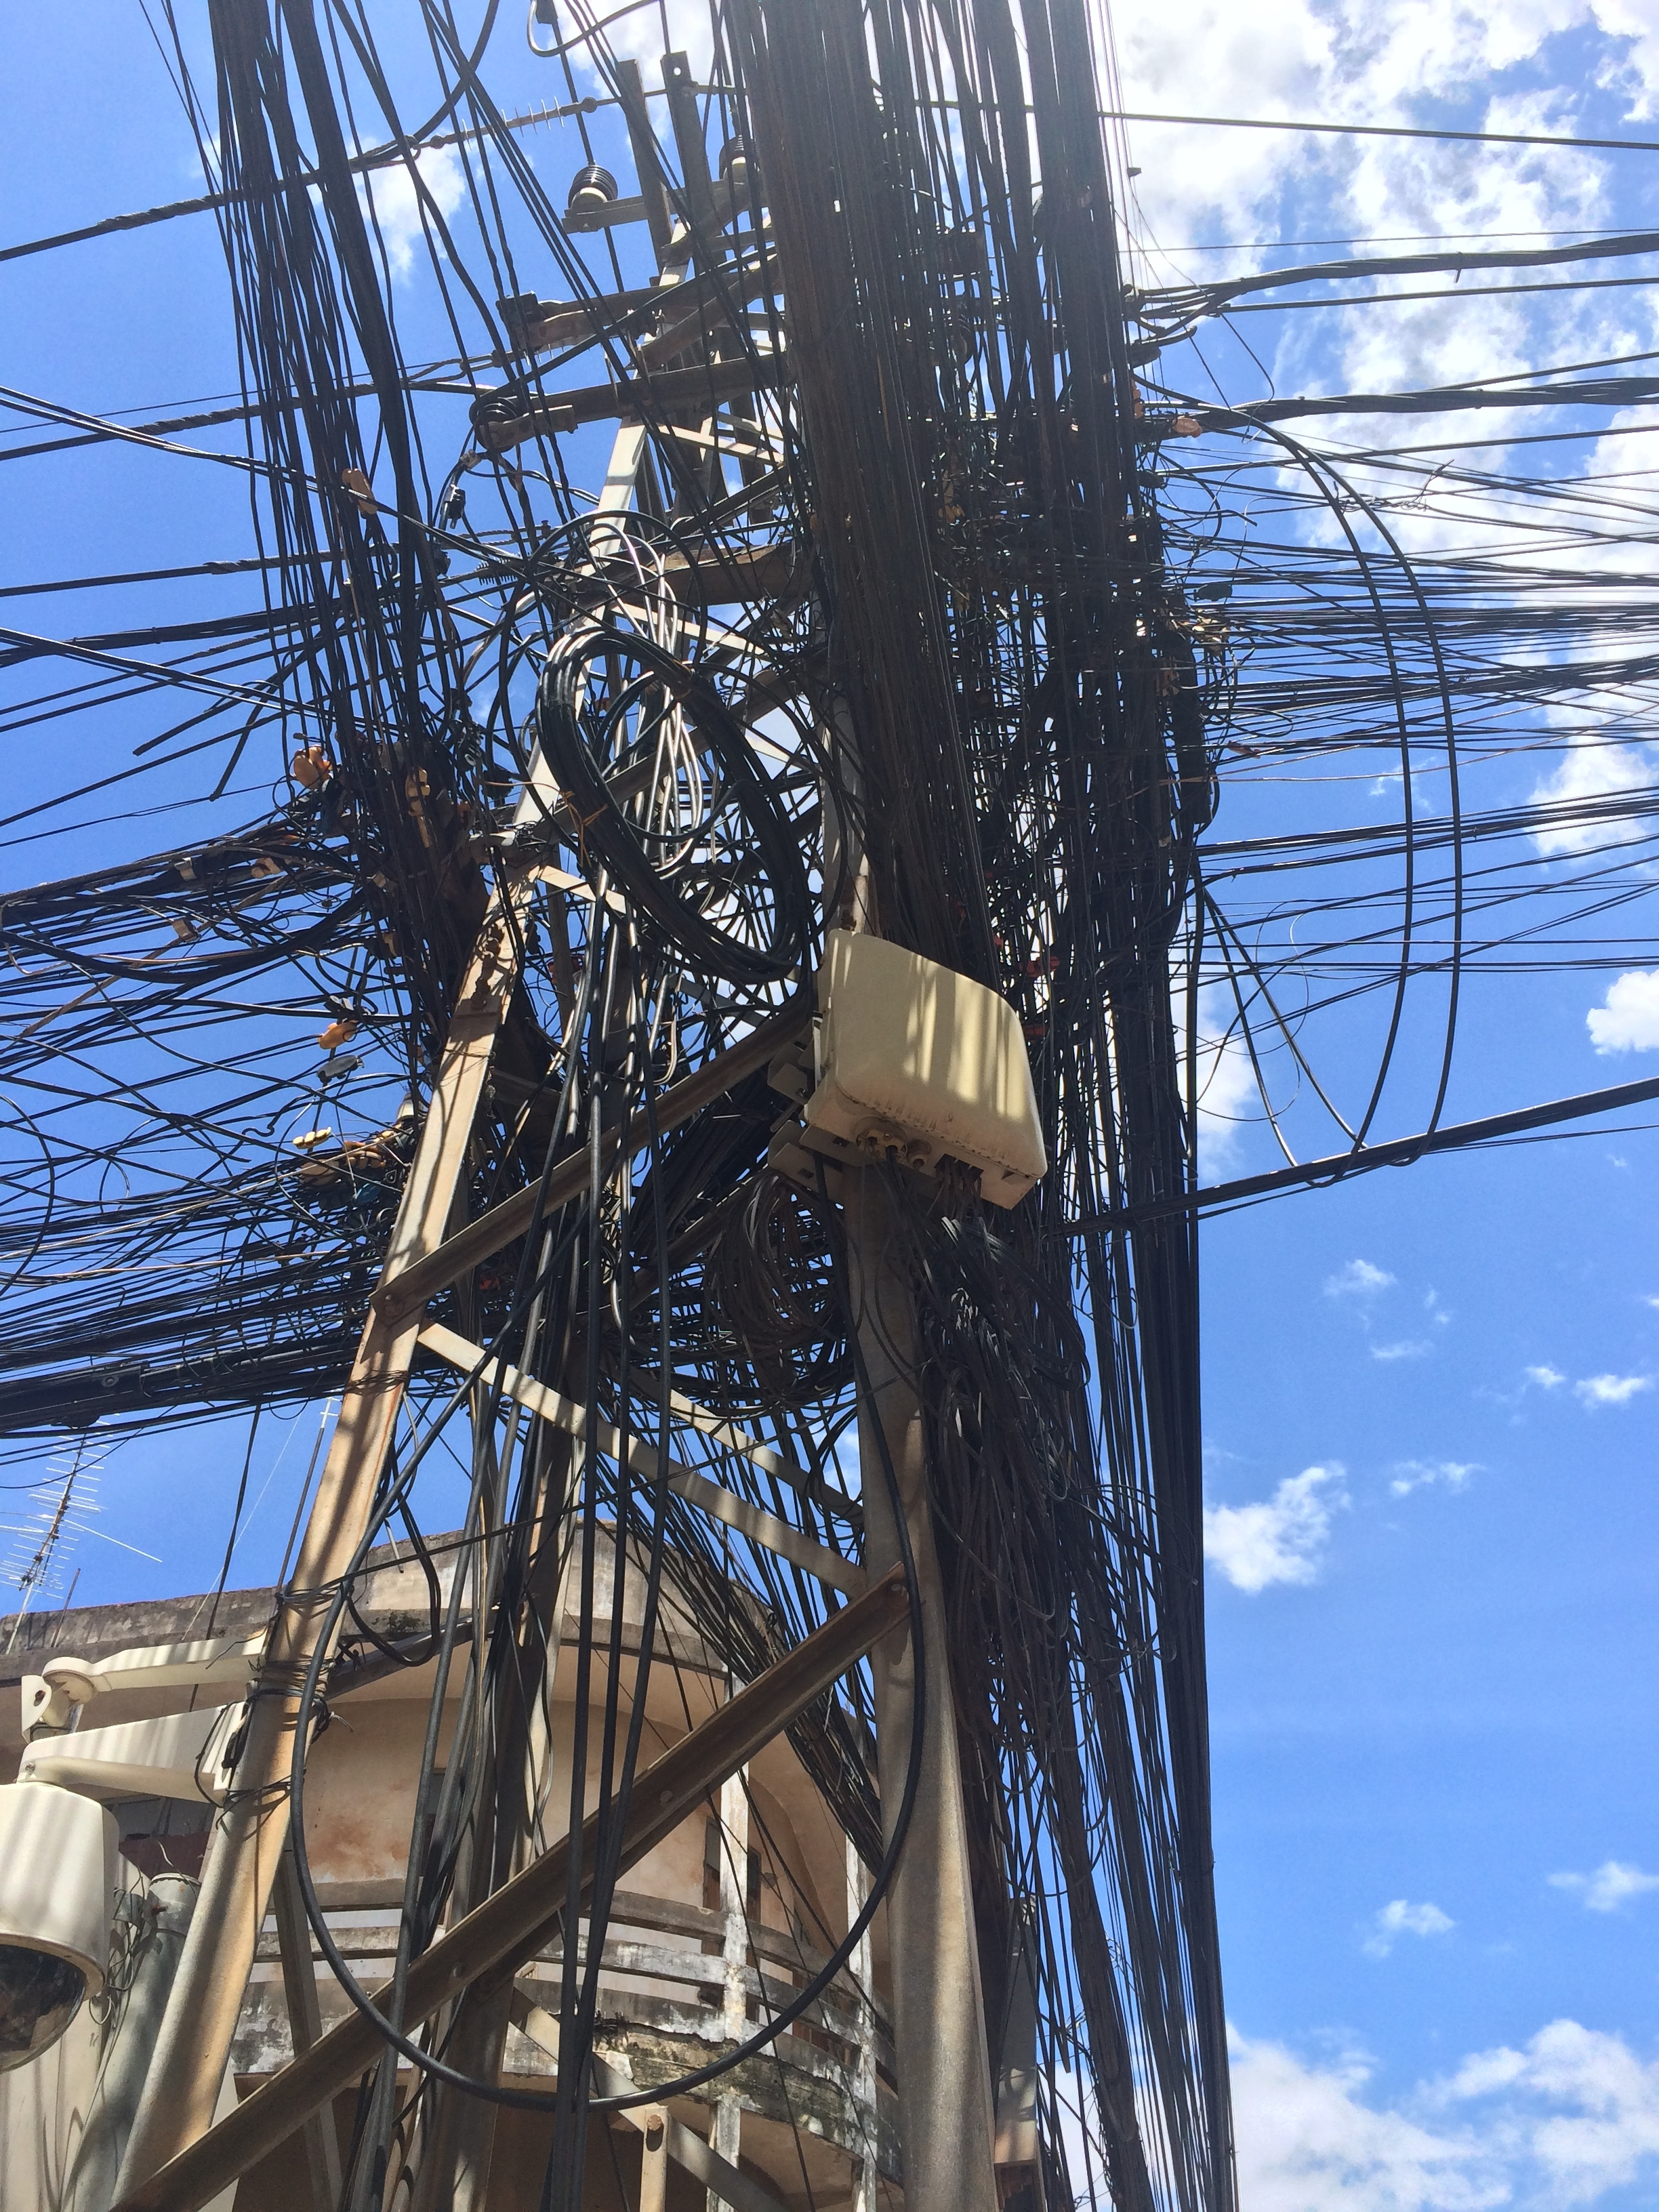 Crazy wires on every street